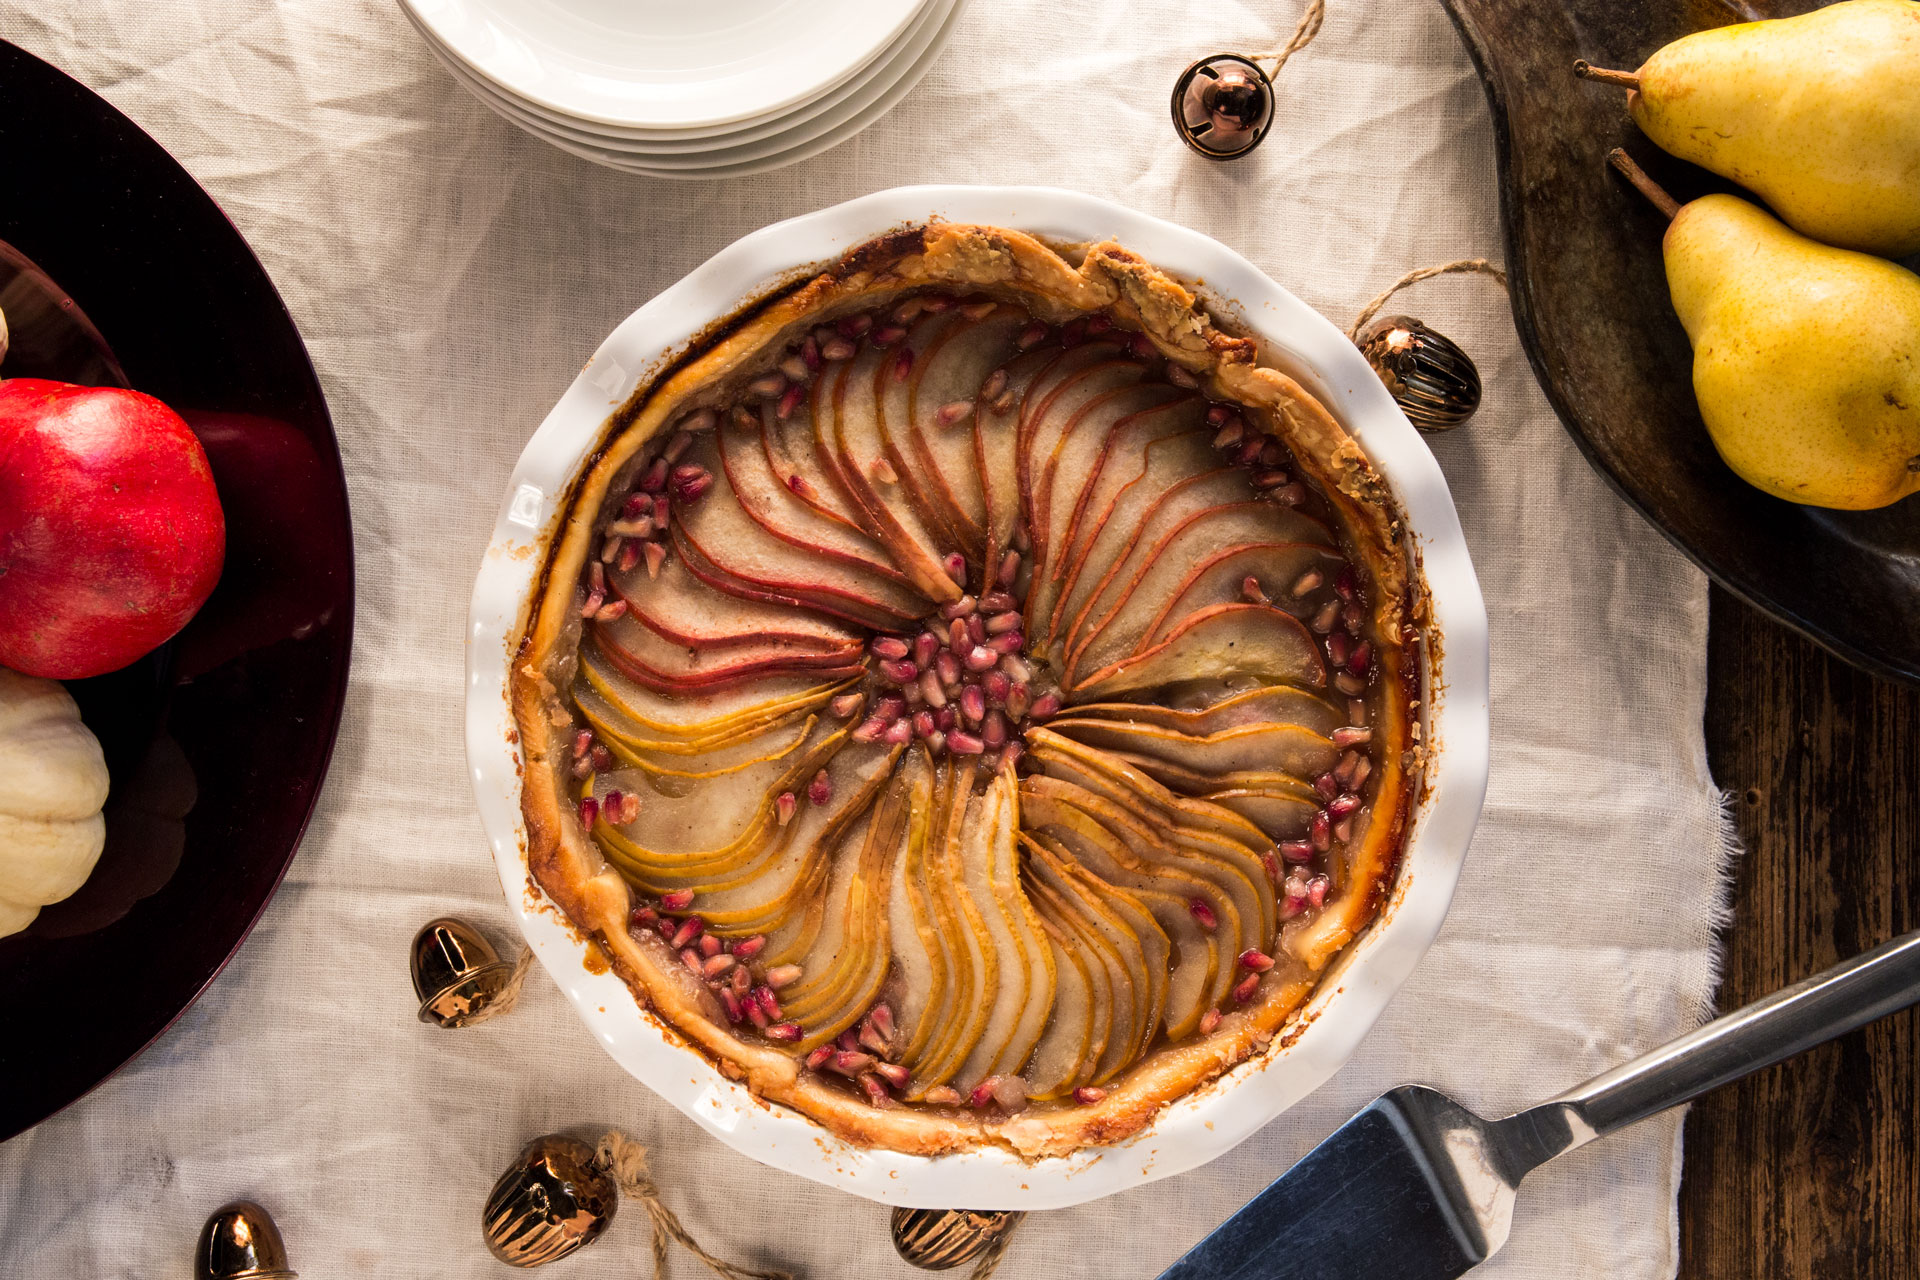 This pie combines sweet and tart flavors with fresh fruit to create a unique but familiar offering that celebrates traditional seasonal ingredients with trendy twists such as pomegranate arils. It also makes a beautiful centerpiece for the dessert table if it is made with multiple pear types.